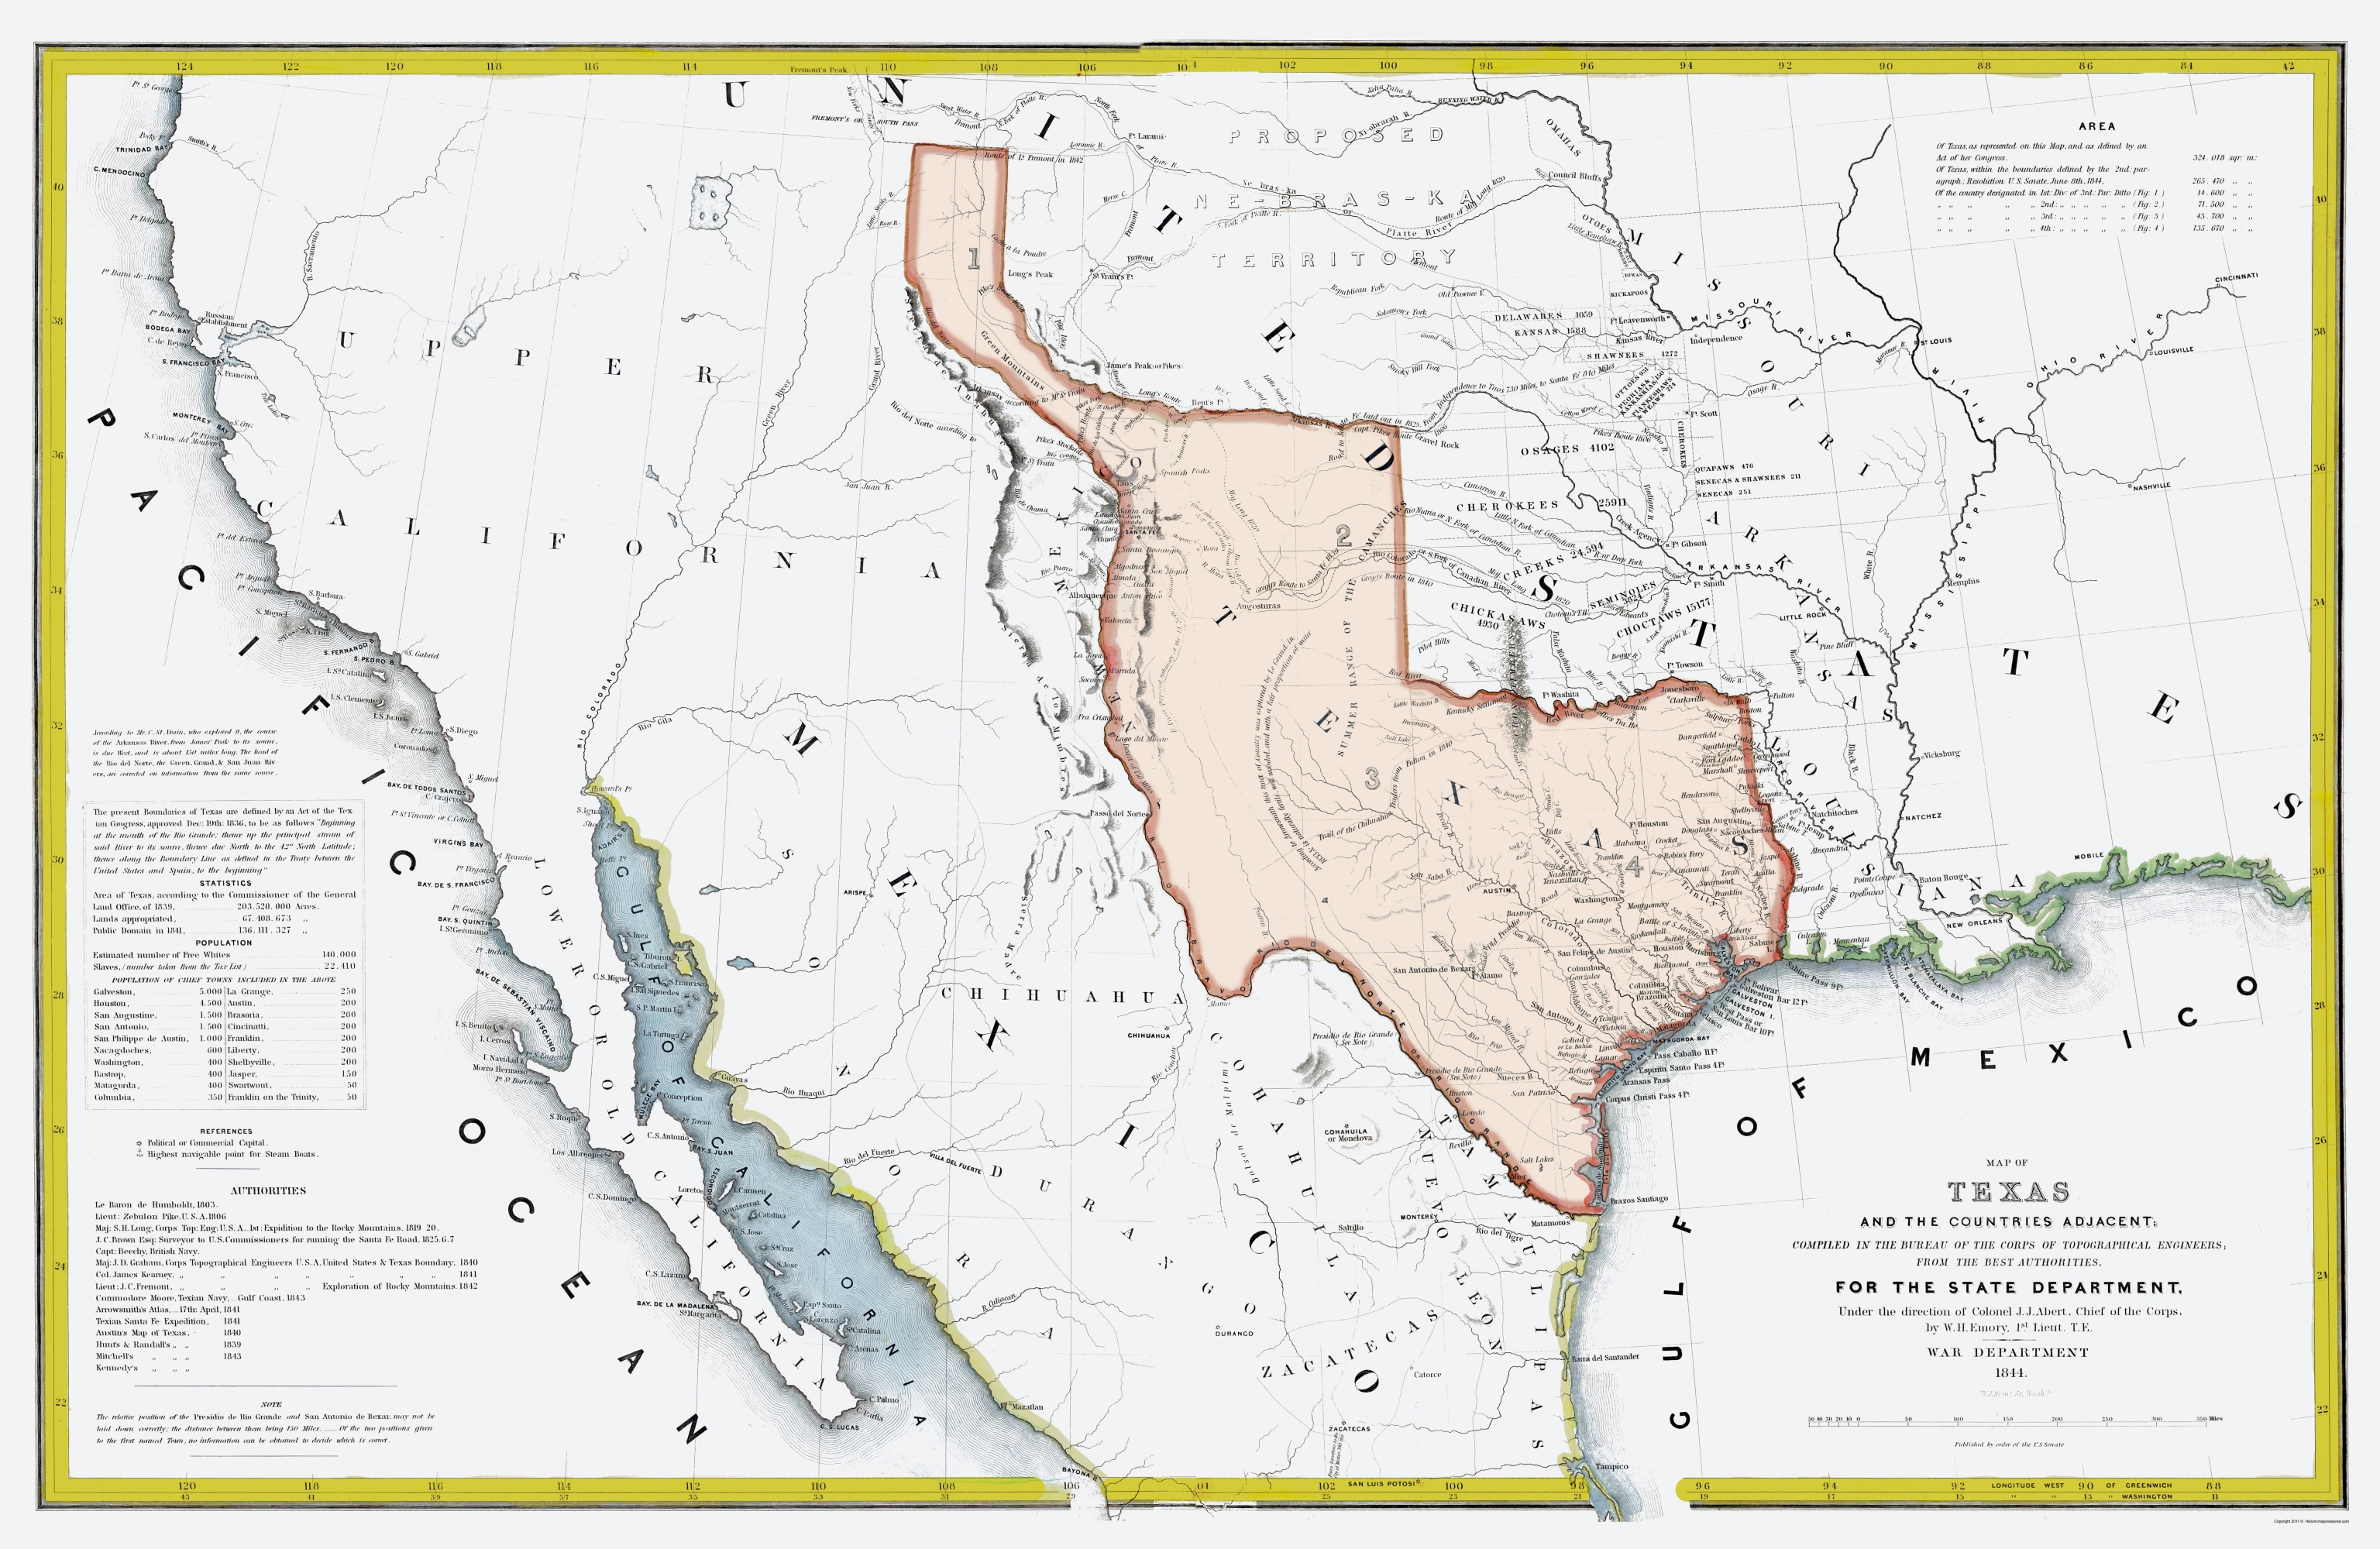 Old Map Of Texas.Old State Map Texas Republic And Adjacent Countries 1844 23 X 35